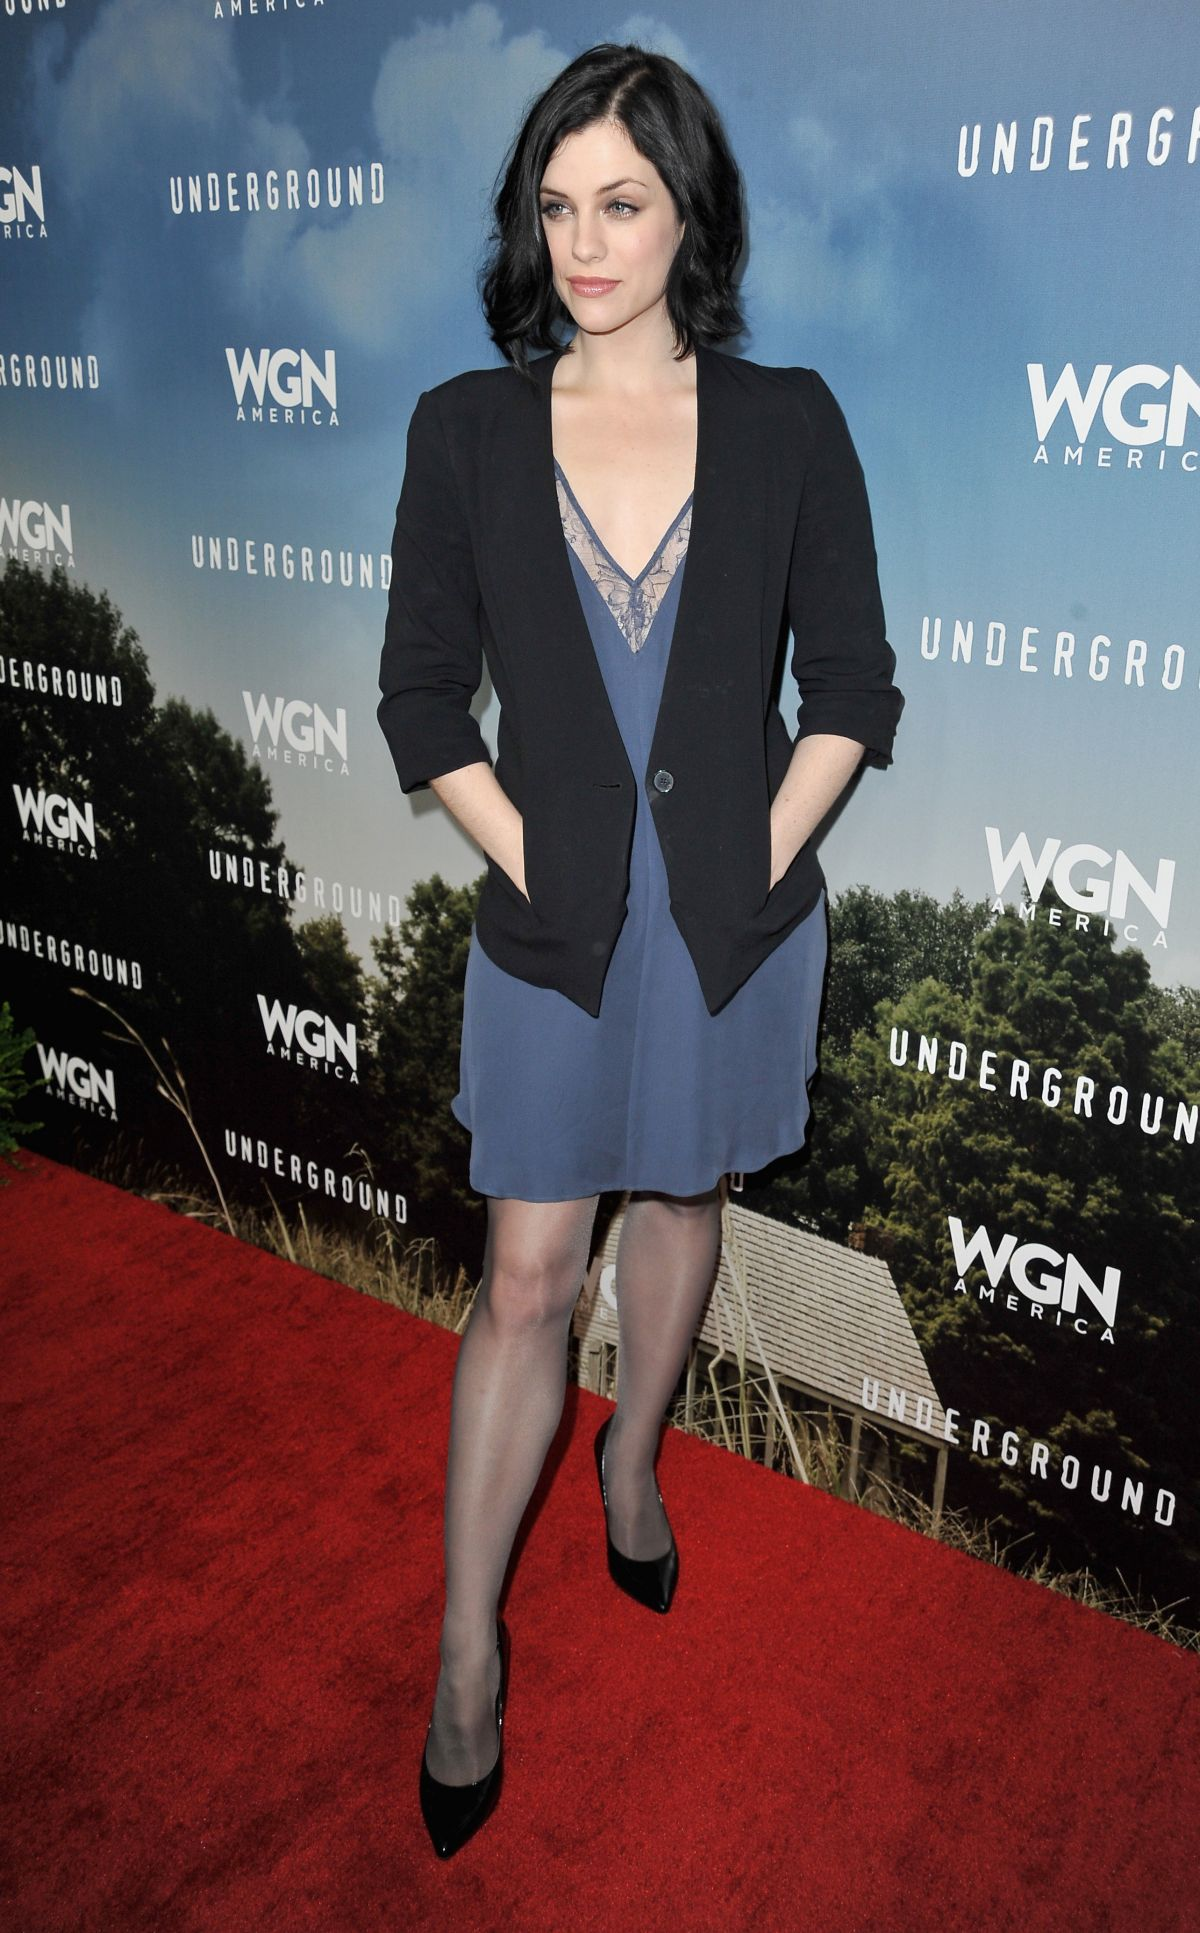 jessica de gouw gif tumblrjessica de gouw gif, jessica de gouw instagram, jessica de gouw site, jessica de gouw twitter, jessica de gouw gallery, jessica de gouw hq, jessica de gouw wdw, jessica de gouw vk, jessica de gouw pictures, jessica de gouw source, jessica de gouw gif tumblr, jessica de gouw, jessica de gouw arrow, jessica de gouw fansite, jessica de gouw wiki, jessica de gouw gif hunt, jessica de gouw dating, jessica de gouw facebook, jessica de gouw listal